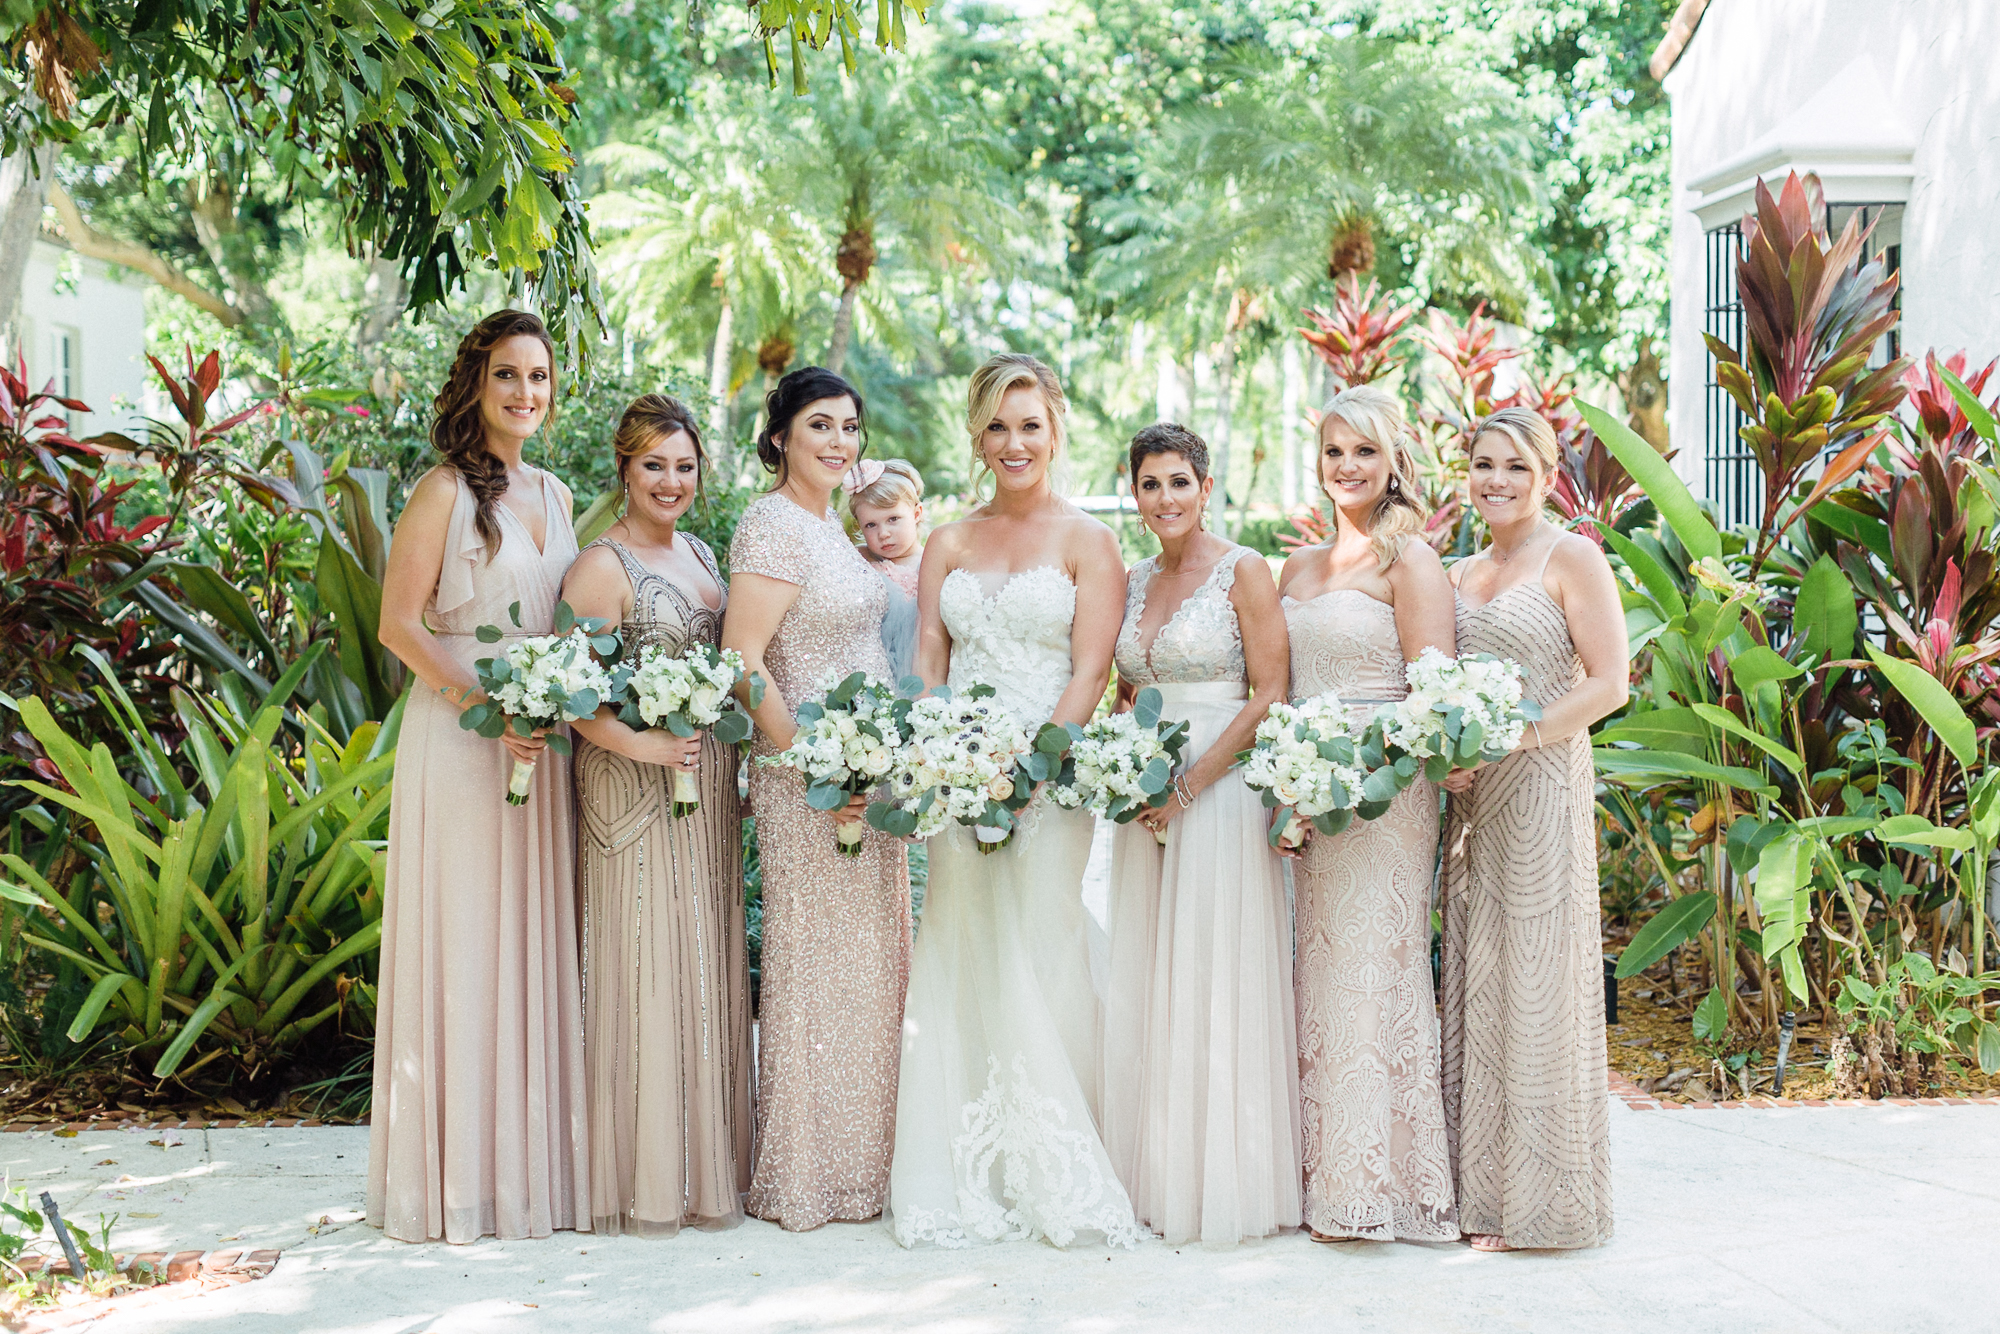 Bride stands with her bridal party wearing blush mix-matched gowns and holding their bouquets.